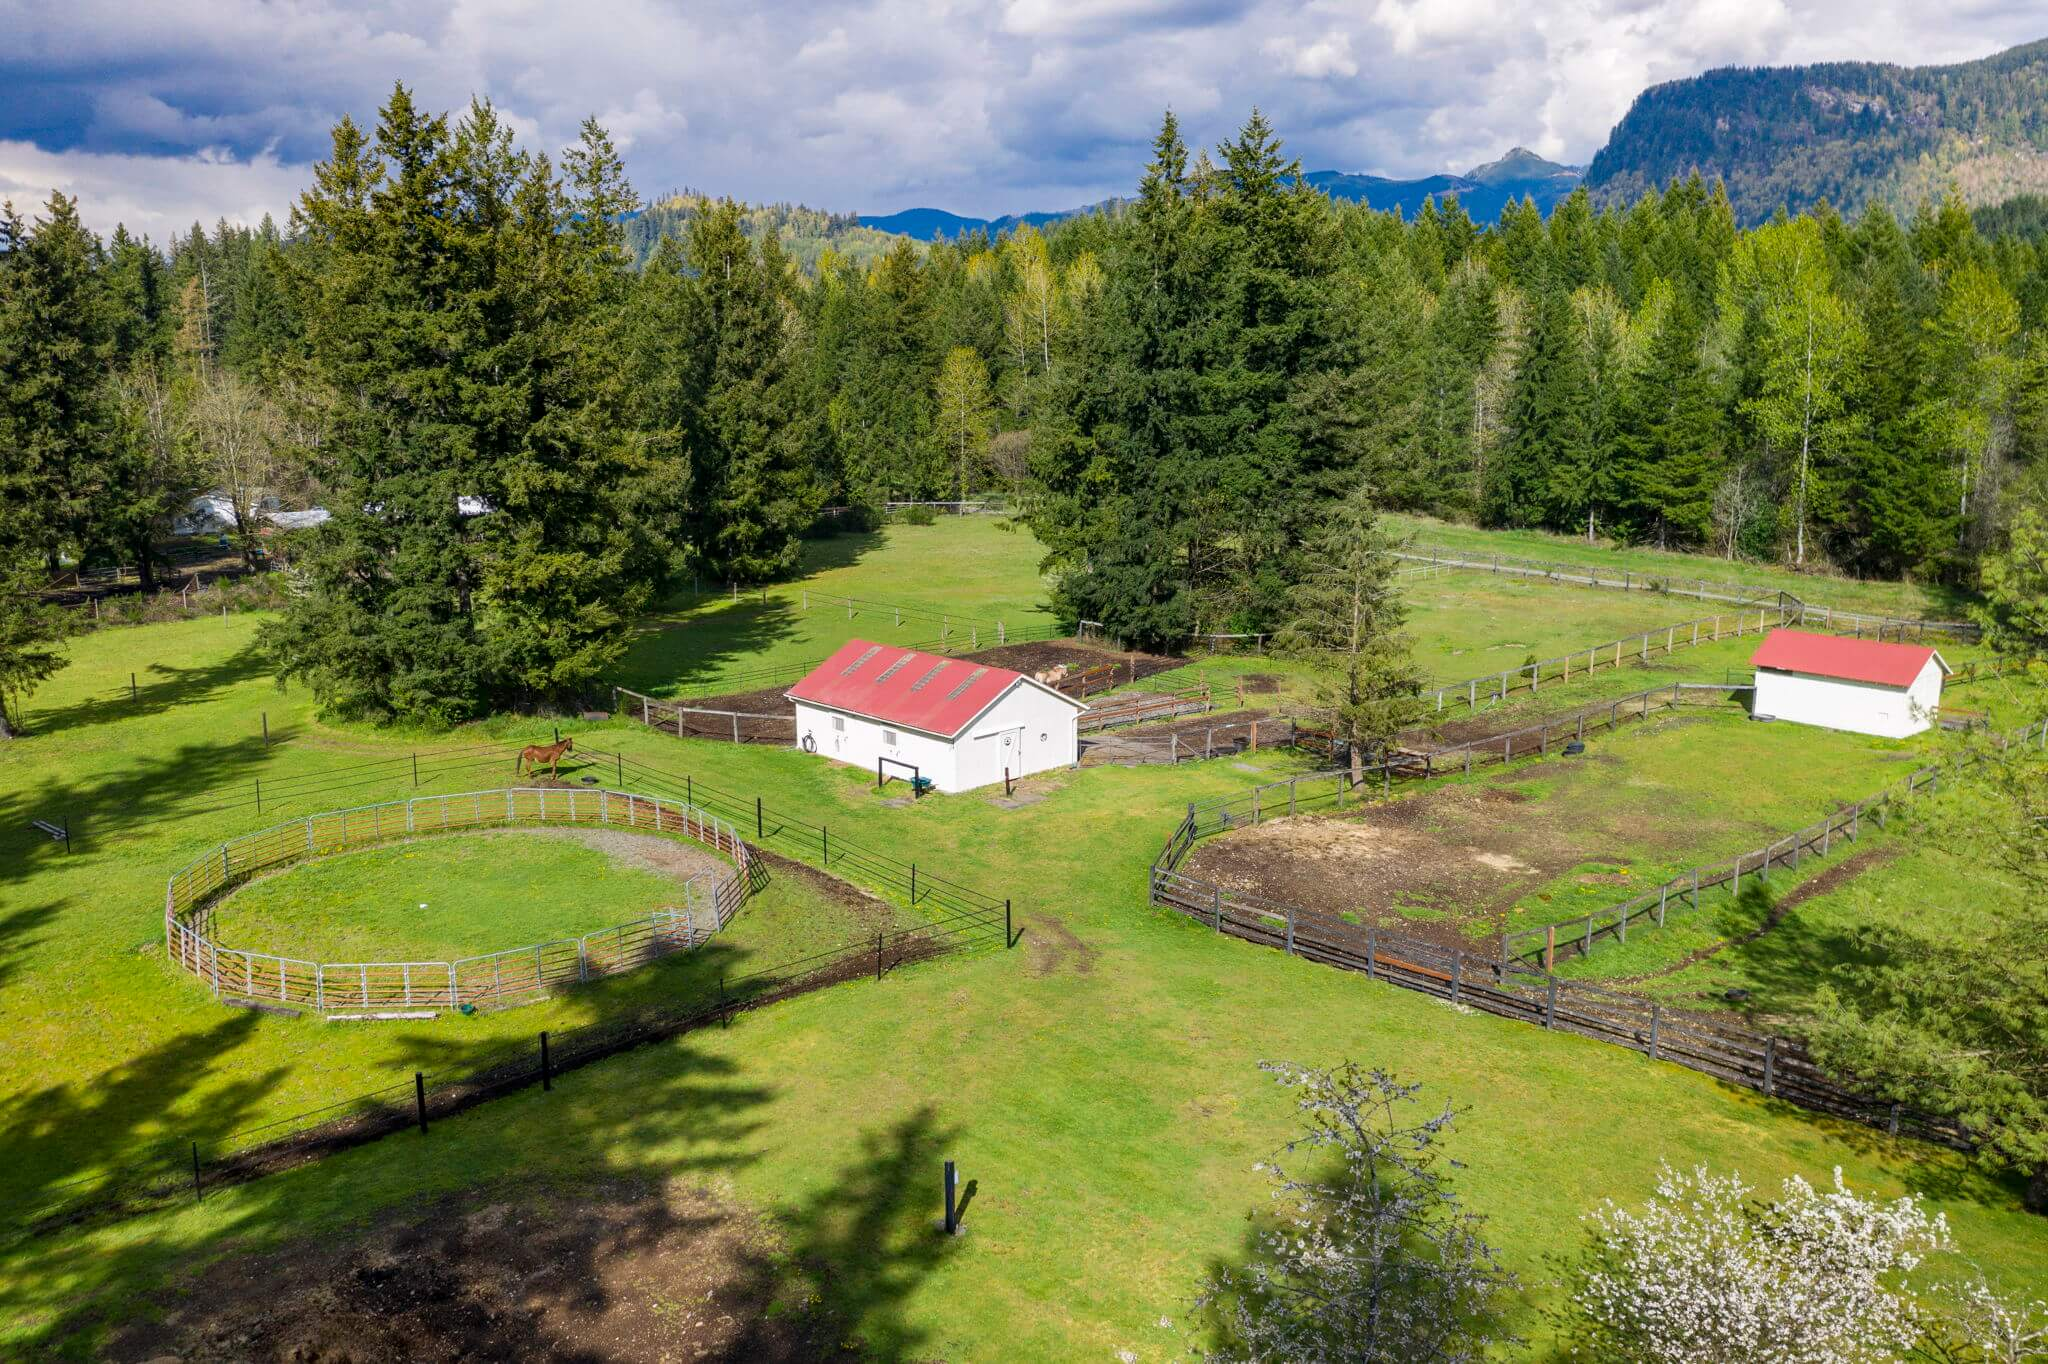 Seven separate fully fenced pastures and a 60' round pen